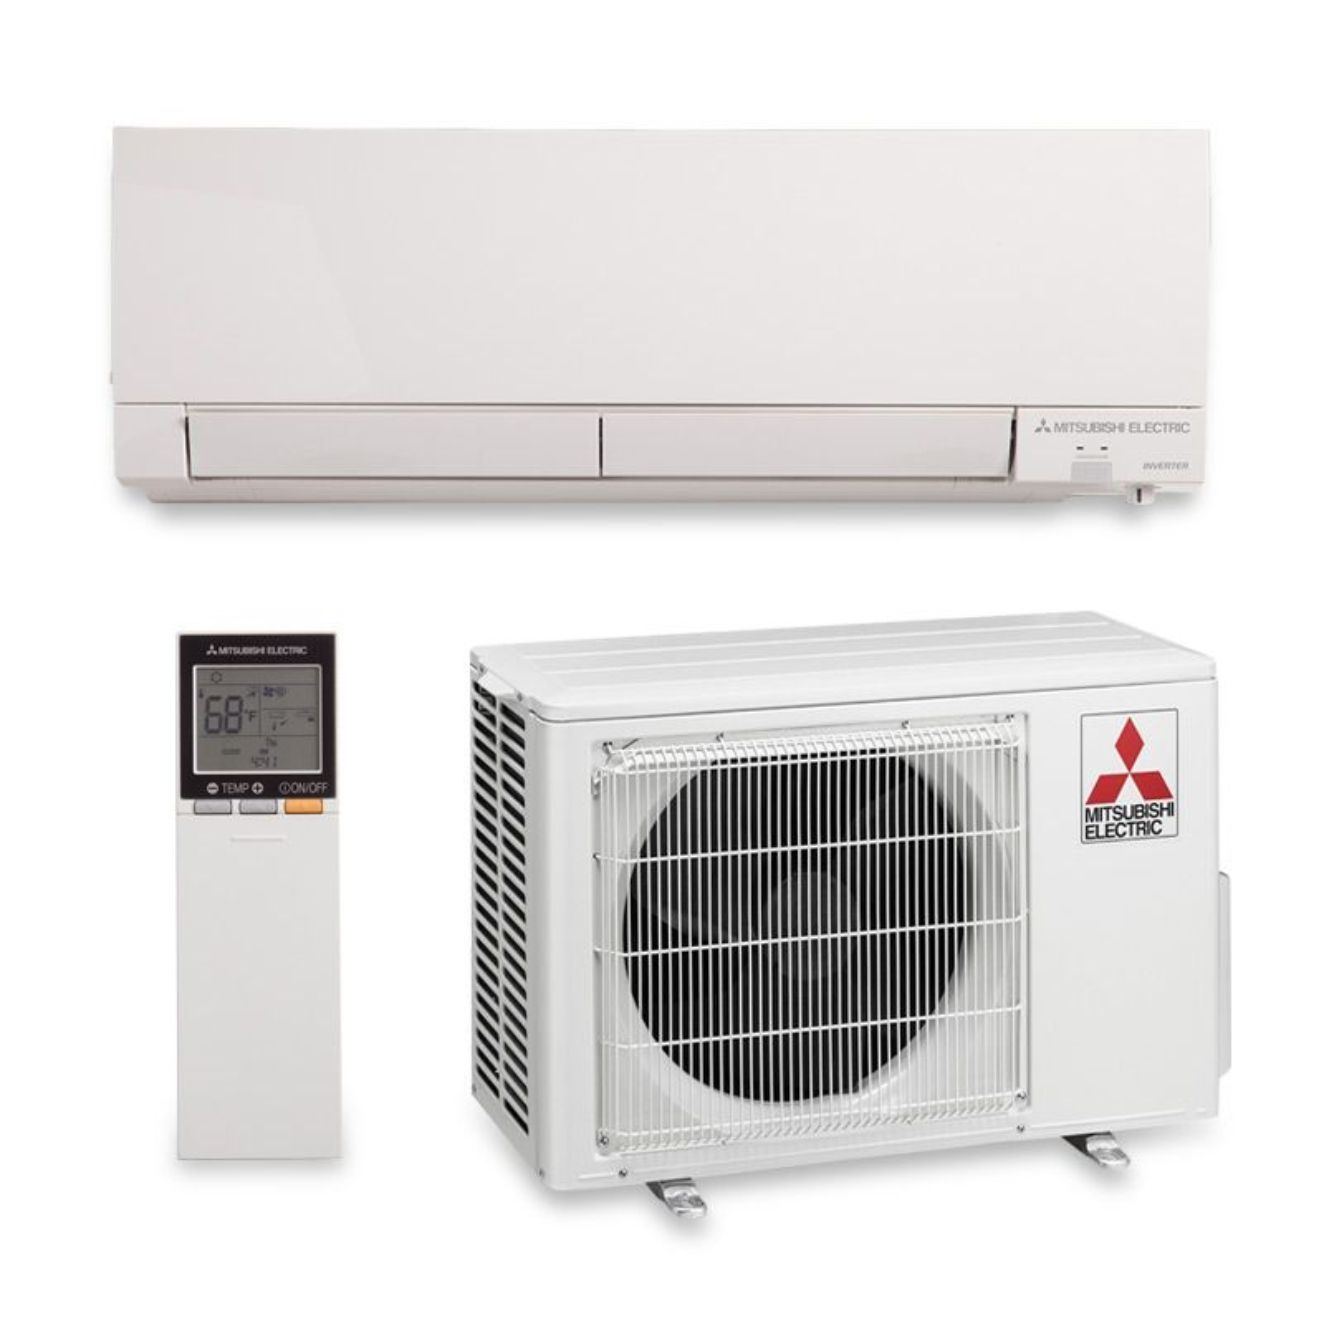 Perfect Solution For Hot Or Cold Rooms Rooms With Poor Air Flow Renovations And Remodeling Primary Living Areas Basements Heat Pump System Ductless Mini Split